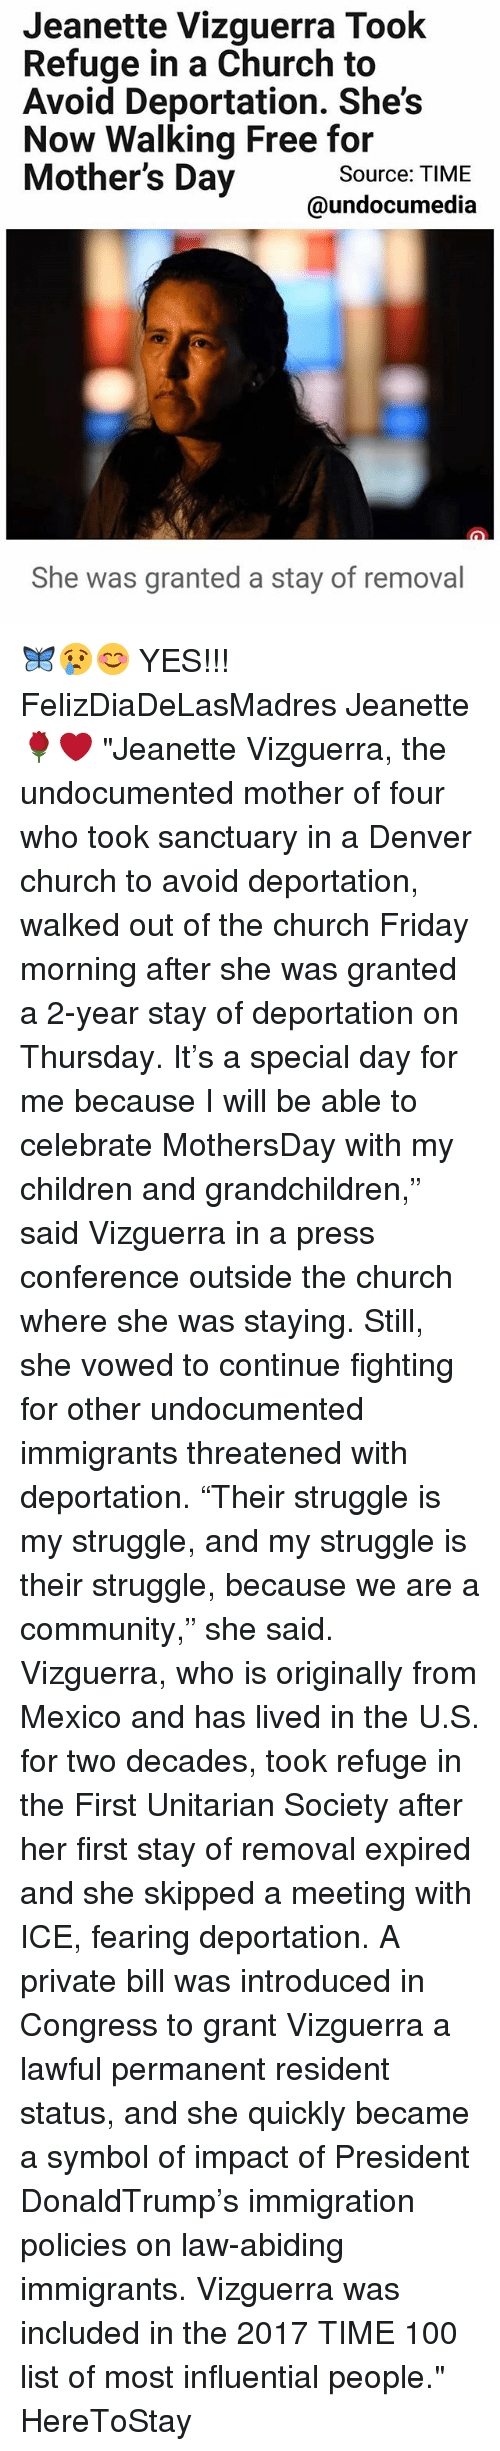 "Anaconda, Children, and Church: Jeanette Vizguerra Took  Refuge in a Church to  Avoid Deportation. She's  Now Walking Free for  Mother's Day  Source: TIME  undocumedia  She was granted a stay of removal 🦋😢😊 YES!!! FelizDiaDeLasMadres Jeanette 🌹❤ ""Jeanette Vizguerra, the undocumented mother of four who took sanctuary in a Denver church to avoid deportation, walked out of the church Friday morning after she was granted a 2-year stay of deportation on Thursday. It's a special day for me because I will be able to celebrate MothersDay with my children and grandchildren,"" said Vizguerra in a press conference outside the church where she was staying. Still, she vowed to continue fighting for other undocumented immigrants threatened with deportation. ""Their struggle is my struggle, and my struggle is their struggle, because we are a community,"" she said. Vizguerra, who is originally from Mexico and has lived in the U.S. for two decades, took refuge in the First Unitarian Society after her first stay of removal expired and she skipped a meeting with ICE, fearing deportation. A private bill was introduced in Congress to grant Vizguerra a lawful permanent resident status, and she quickly became a symbol of impact of President DonaldTrump's immigration policies on law-abiding immigrants. Vizguerra was included in the 2017 TIME 100 list of most influential people."" HereToStay"